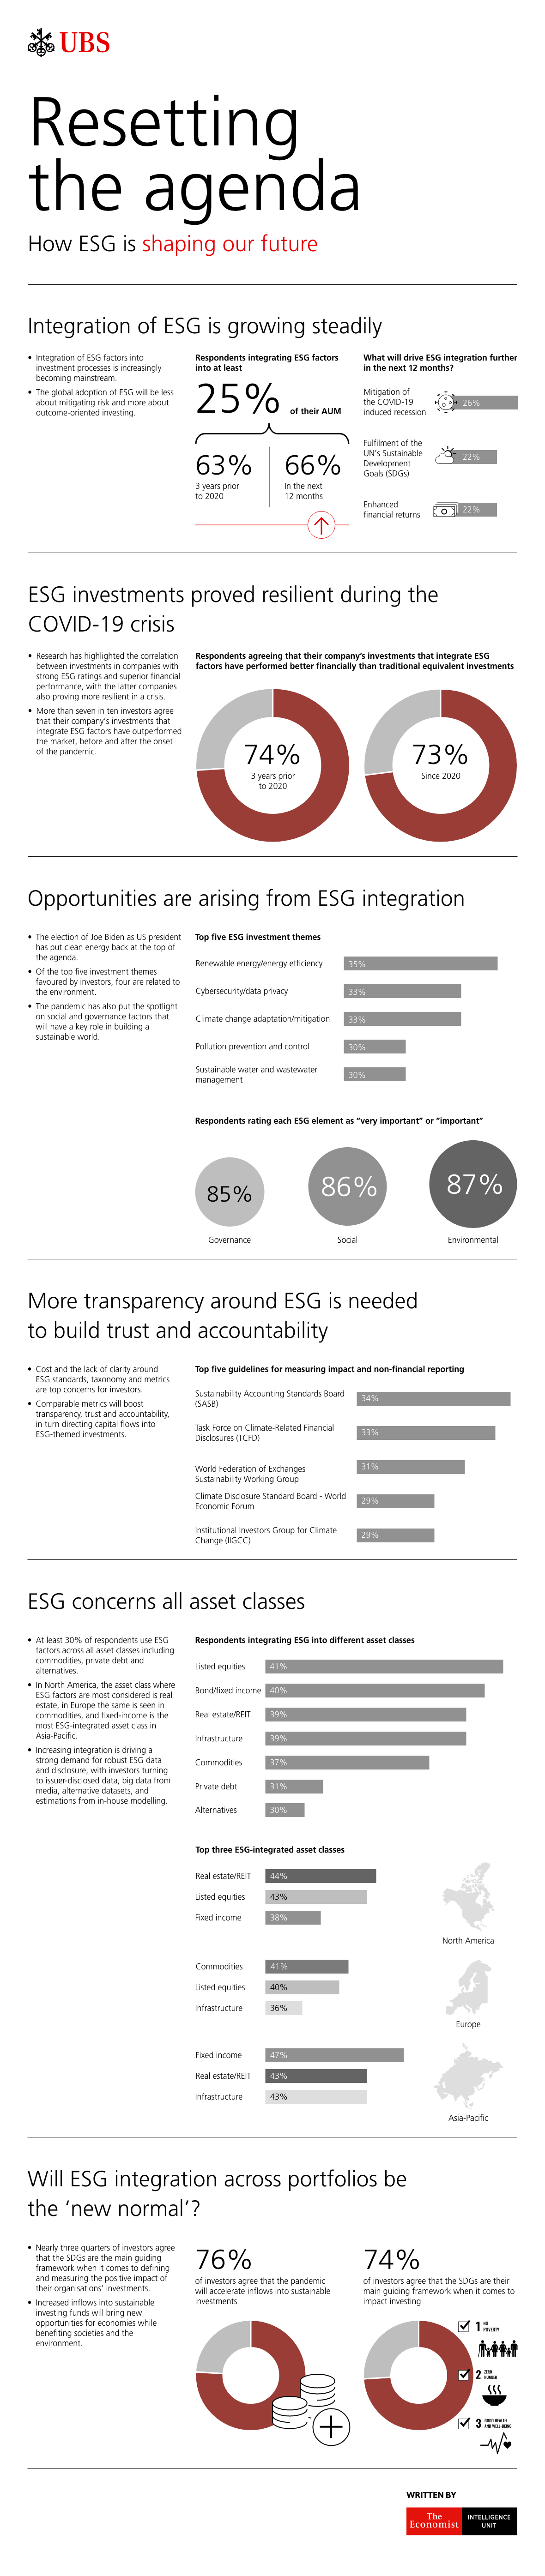 Resetting the agenda: How ESG is shaping our future